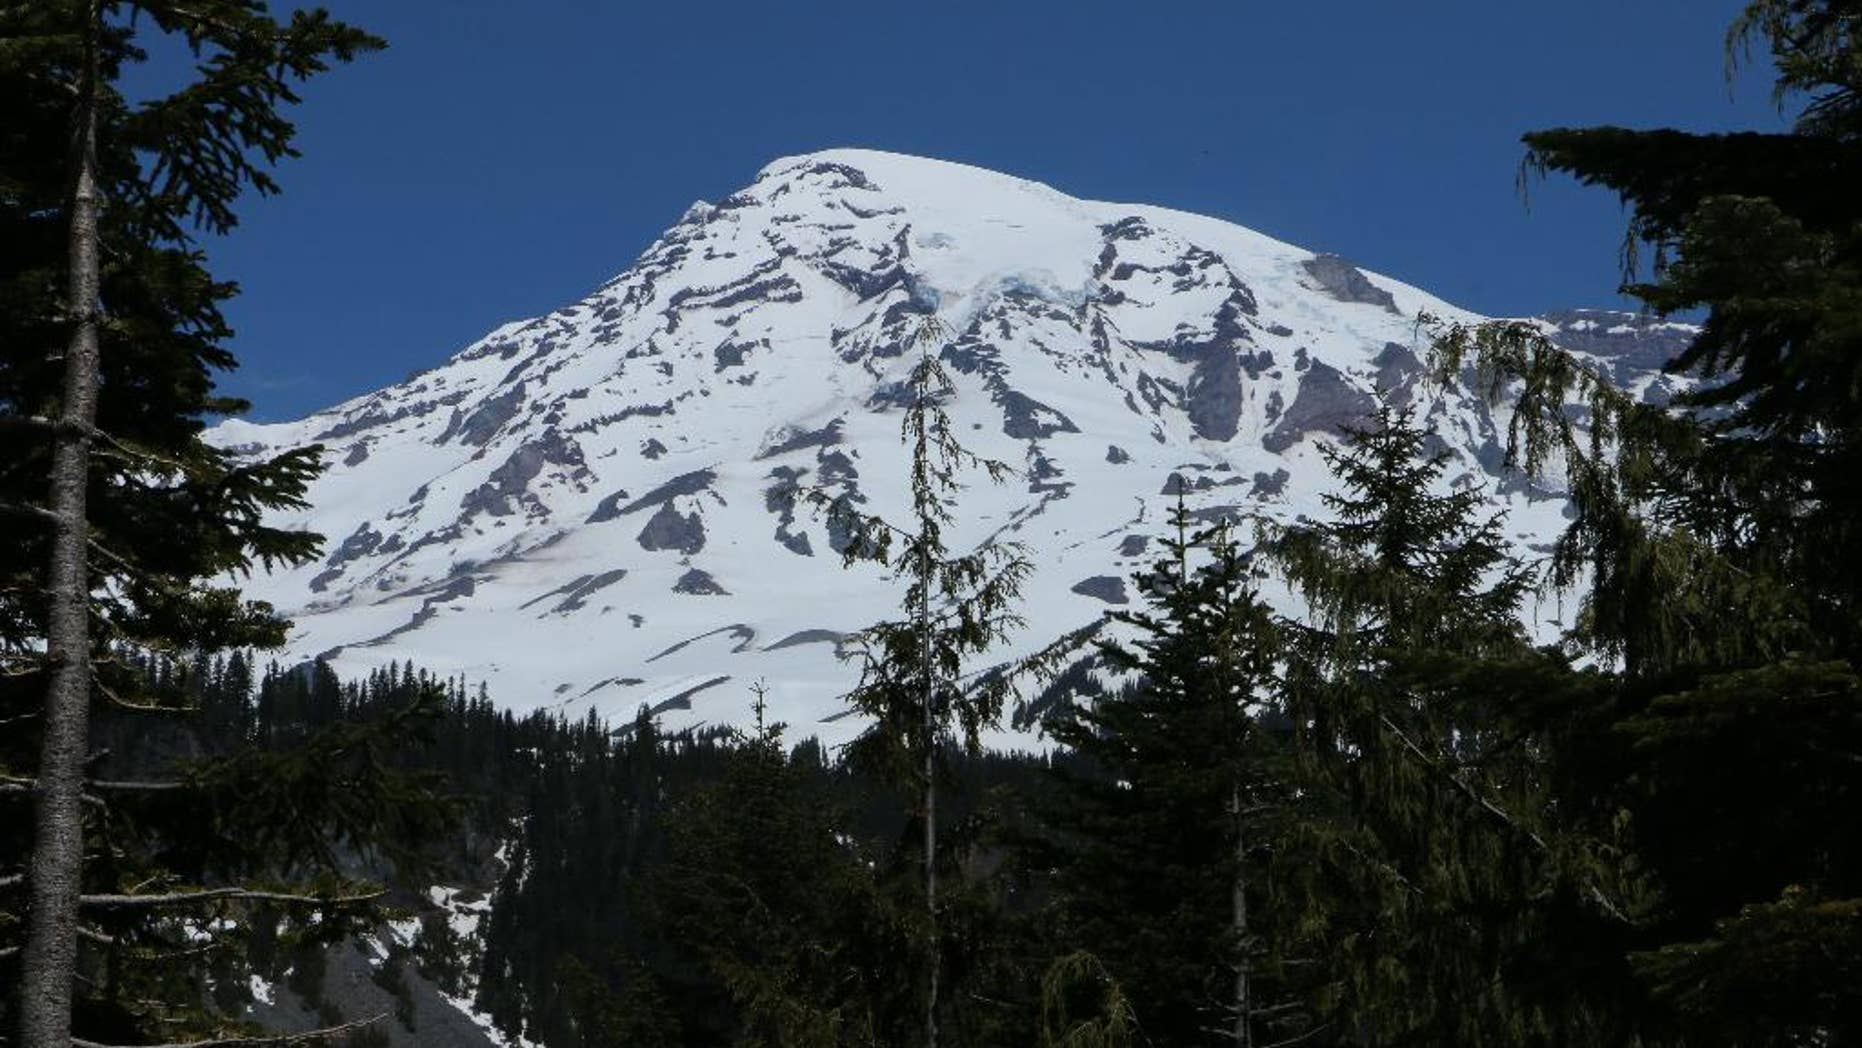 Mount Rainier is seen in the distance from a viewpoint within Mount Rainier National Park on Sunday, June 1, 2014. Park officials said that there are no immediate plans to recover the bodies of six climbers who likely fell thousands of feet to their deaths in the worst alpine accident on the mountain in decades.(AP Photo/Rachel La Corte)